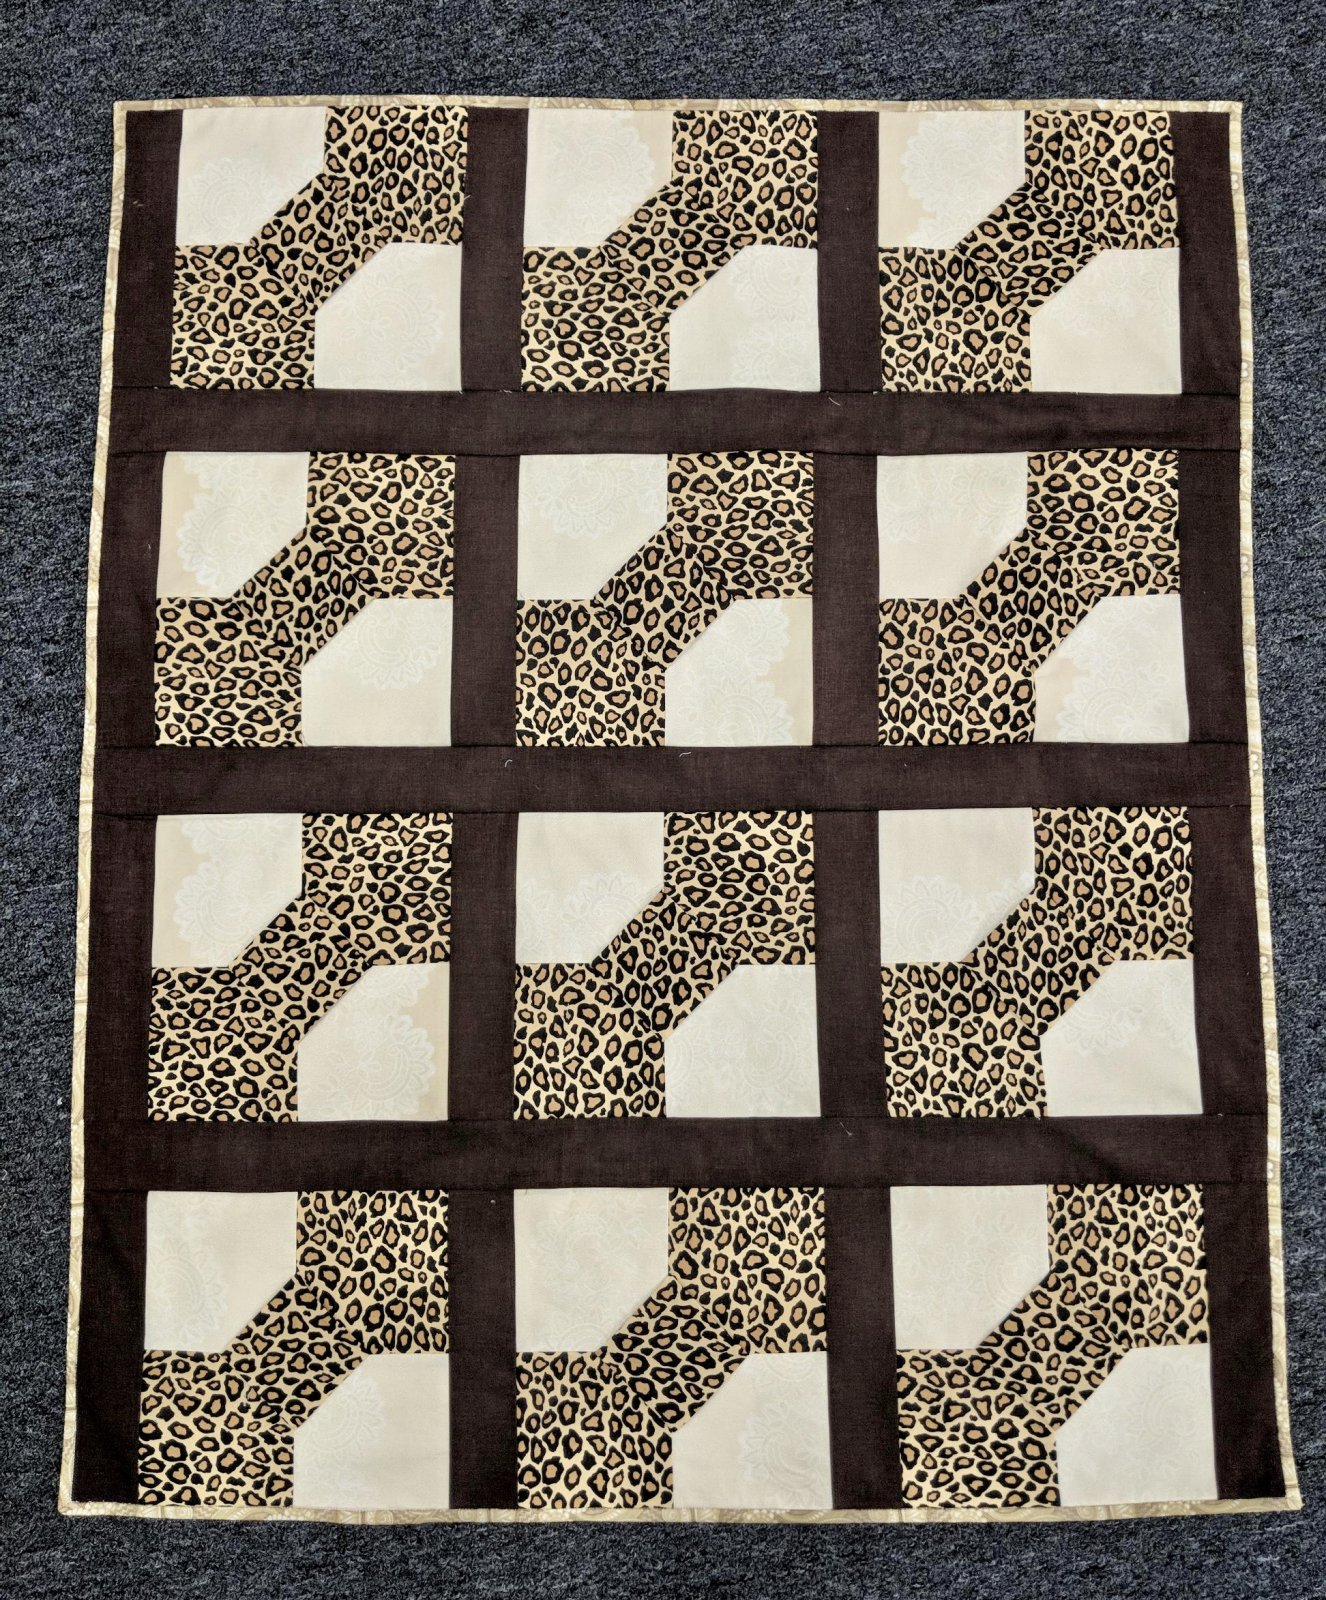 Basic Serger Online - Quilt As You Go